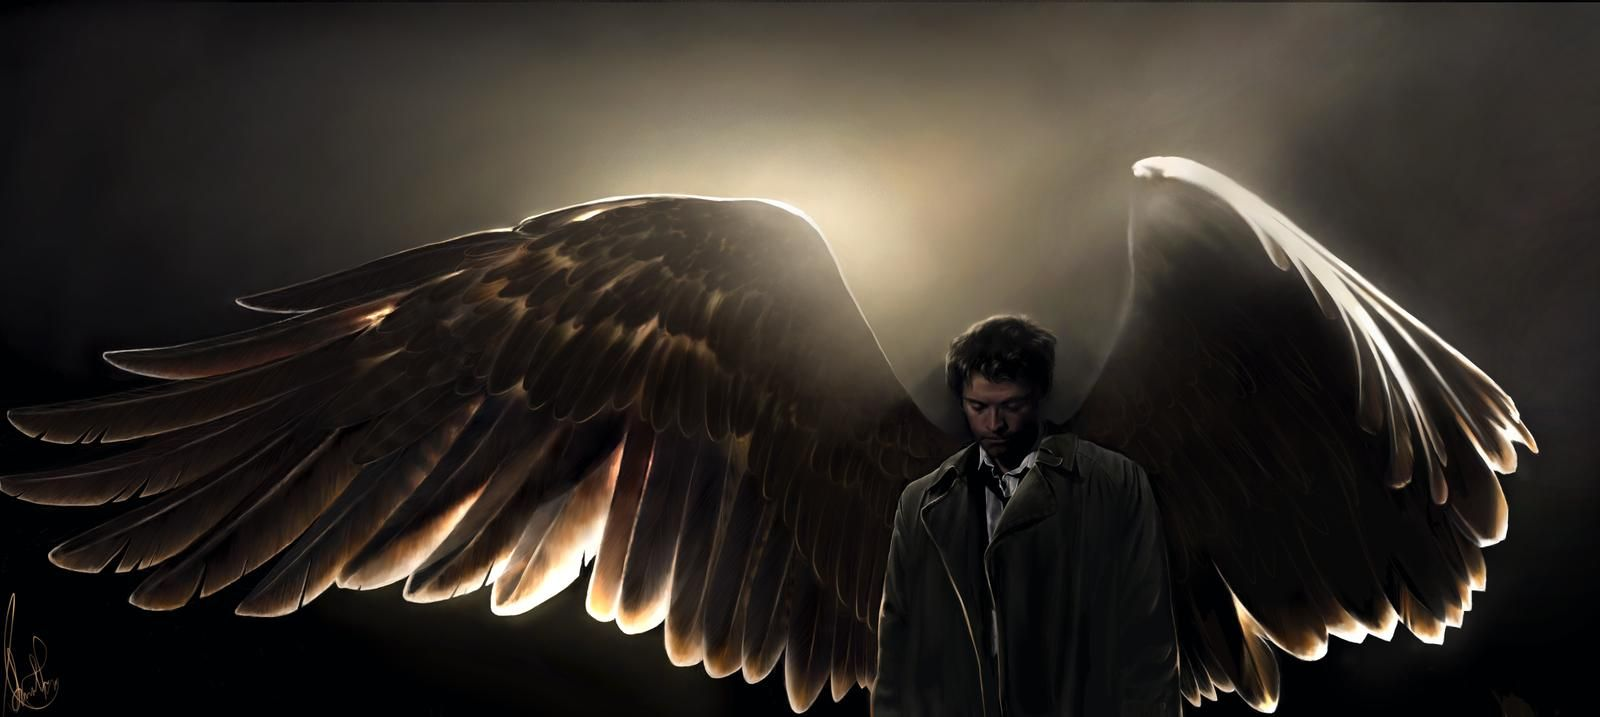 Supernatural Castiel With Wings Wallpaper - Viewing Gallery